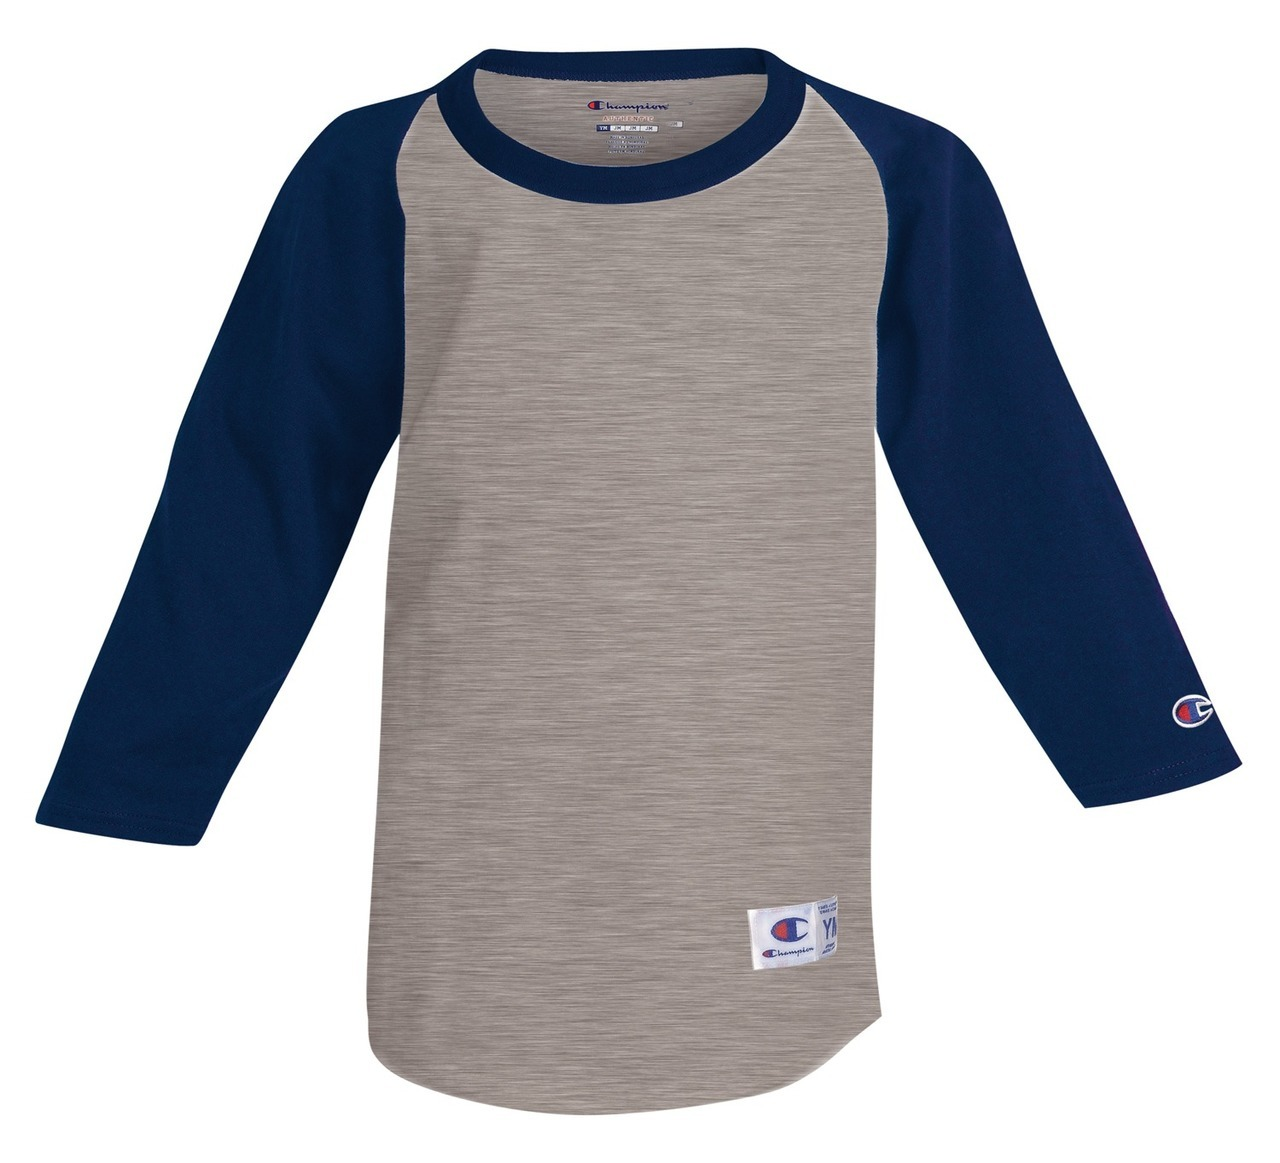 Champion Youth Raglan Baseball Tee